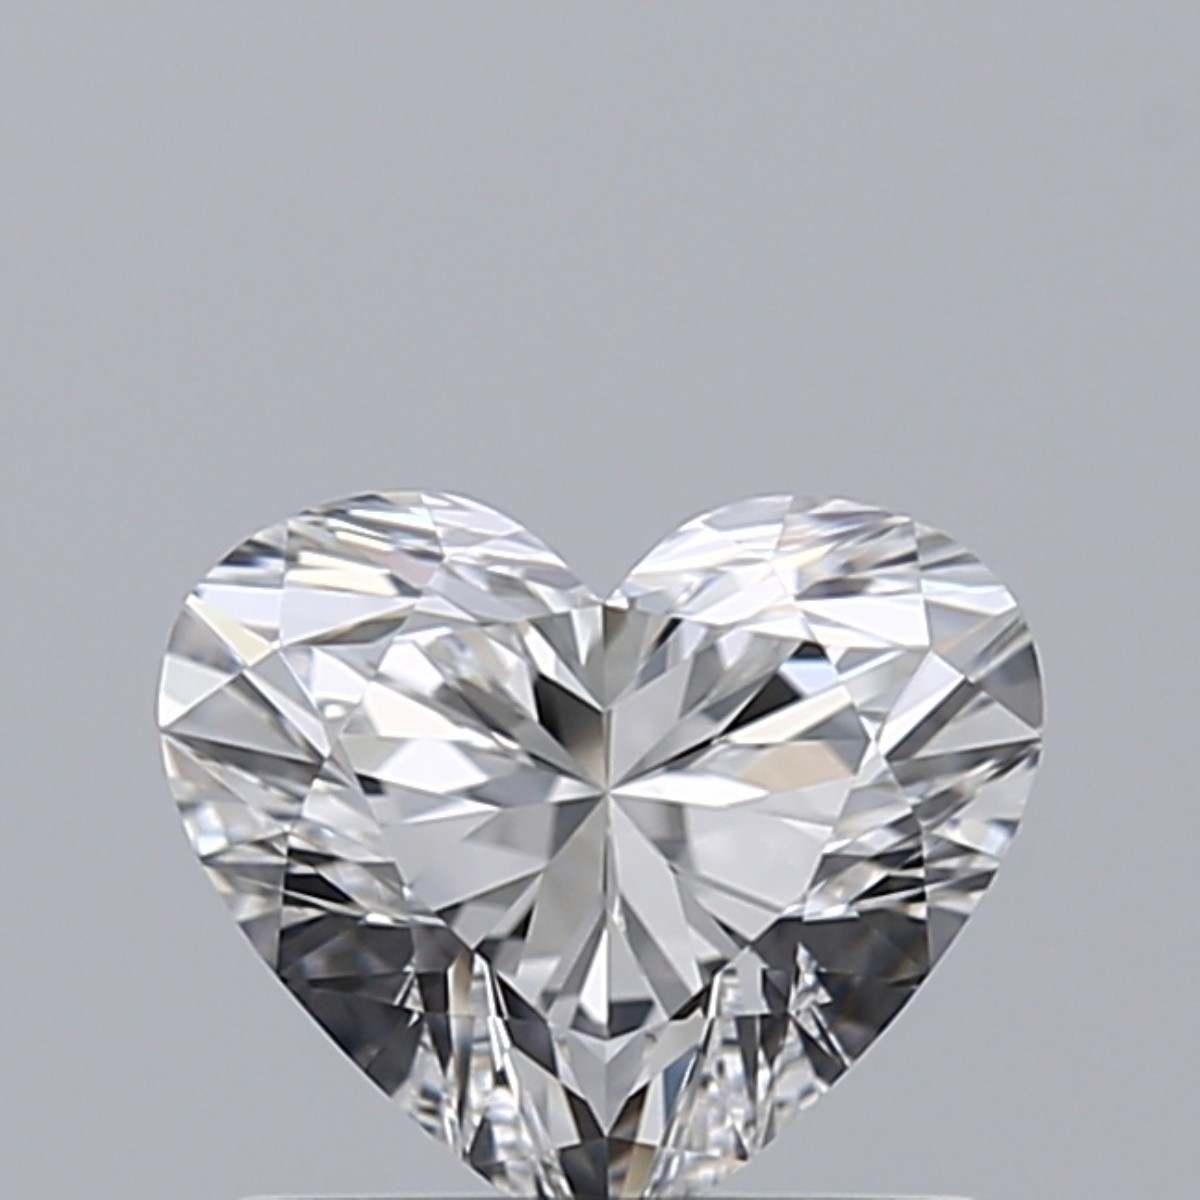 0.77 Carat Heart Diamond (E/VVS1)